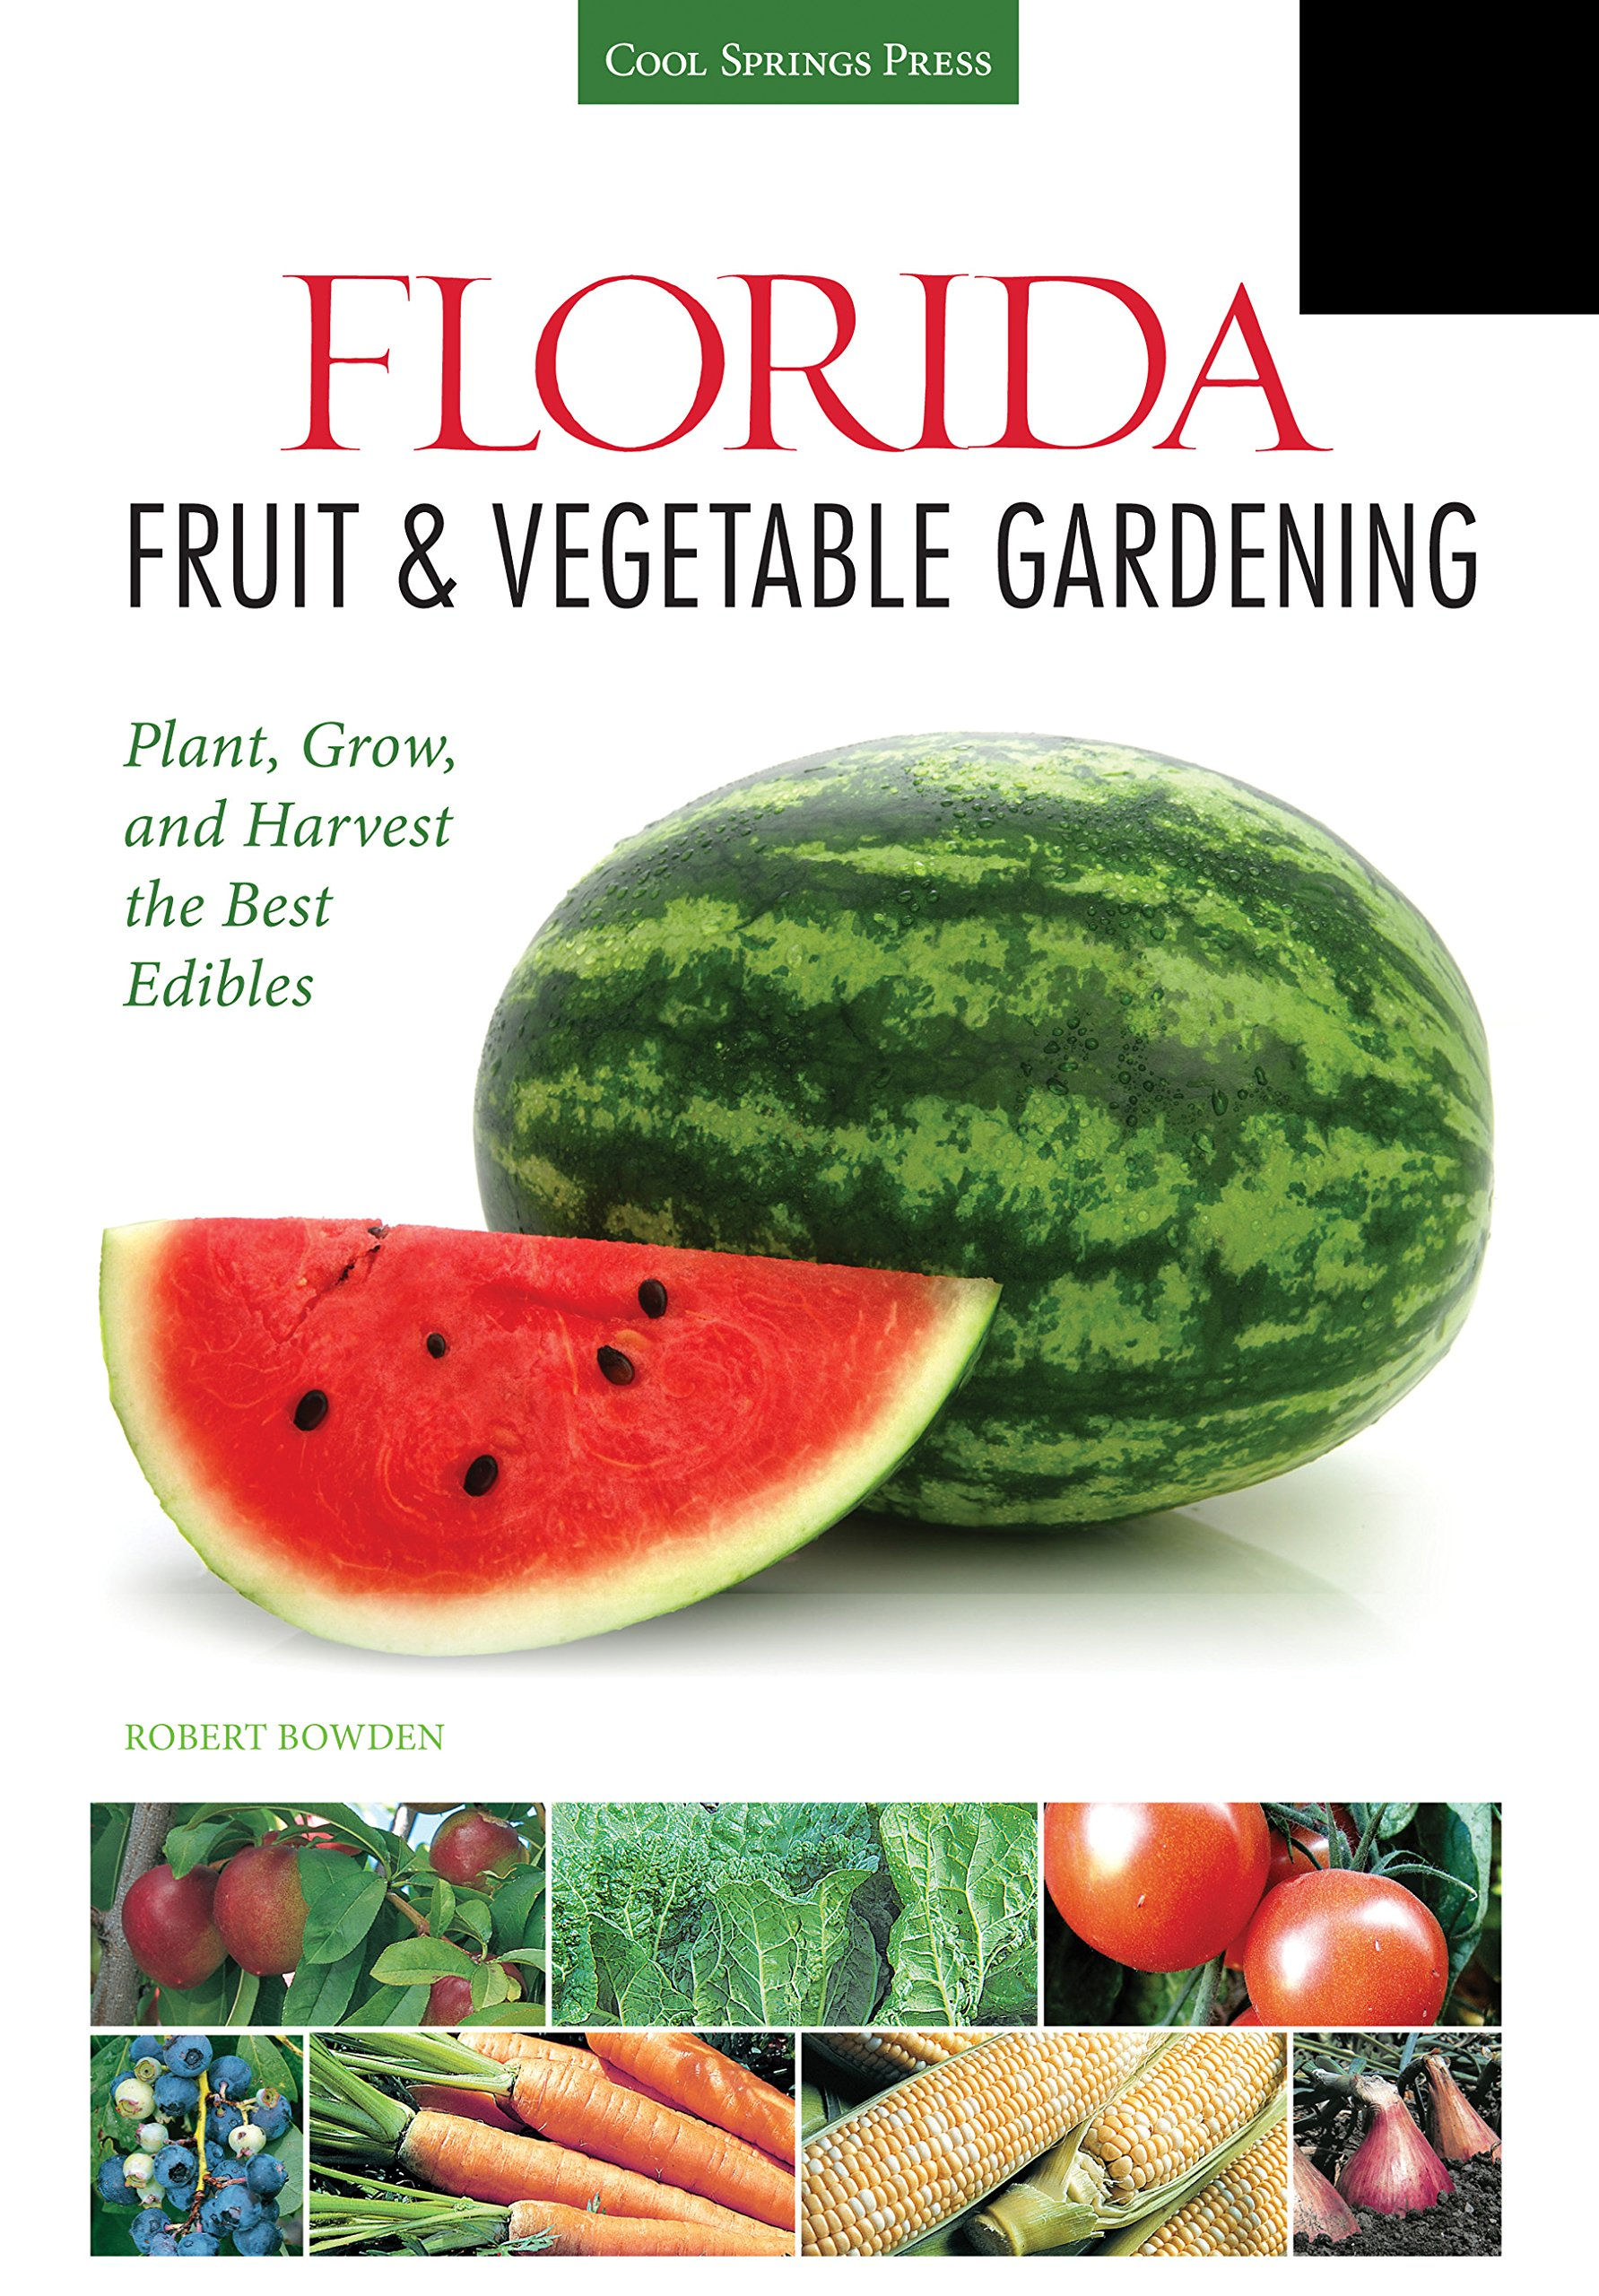 Florida Fruit U0026 Vegetable Gardening: Plant, Grow, And Harvest The Best  Edibles (Fruit U0026 Vegetable Gardening Guides): Robert Bowden: 9781591869054:  ...